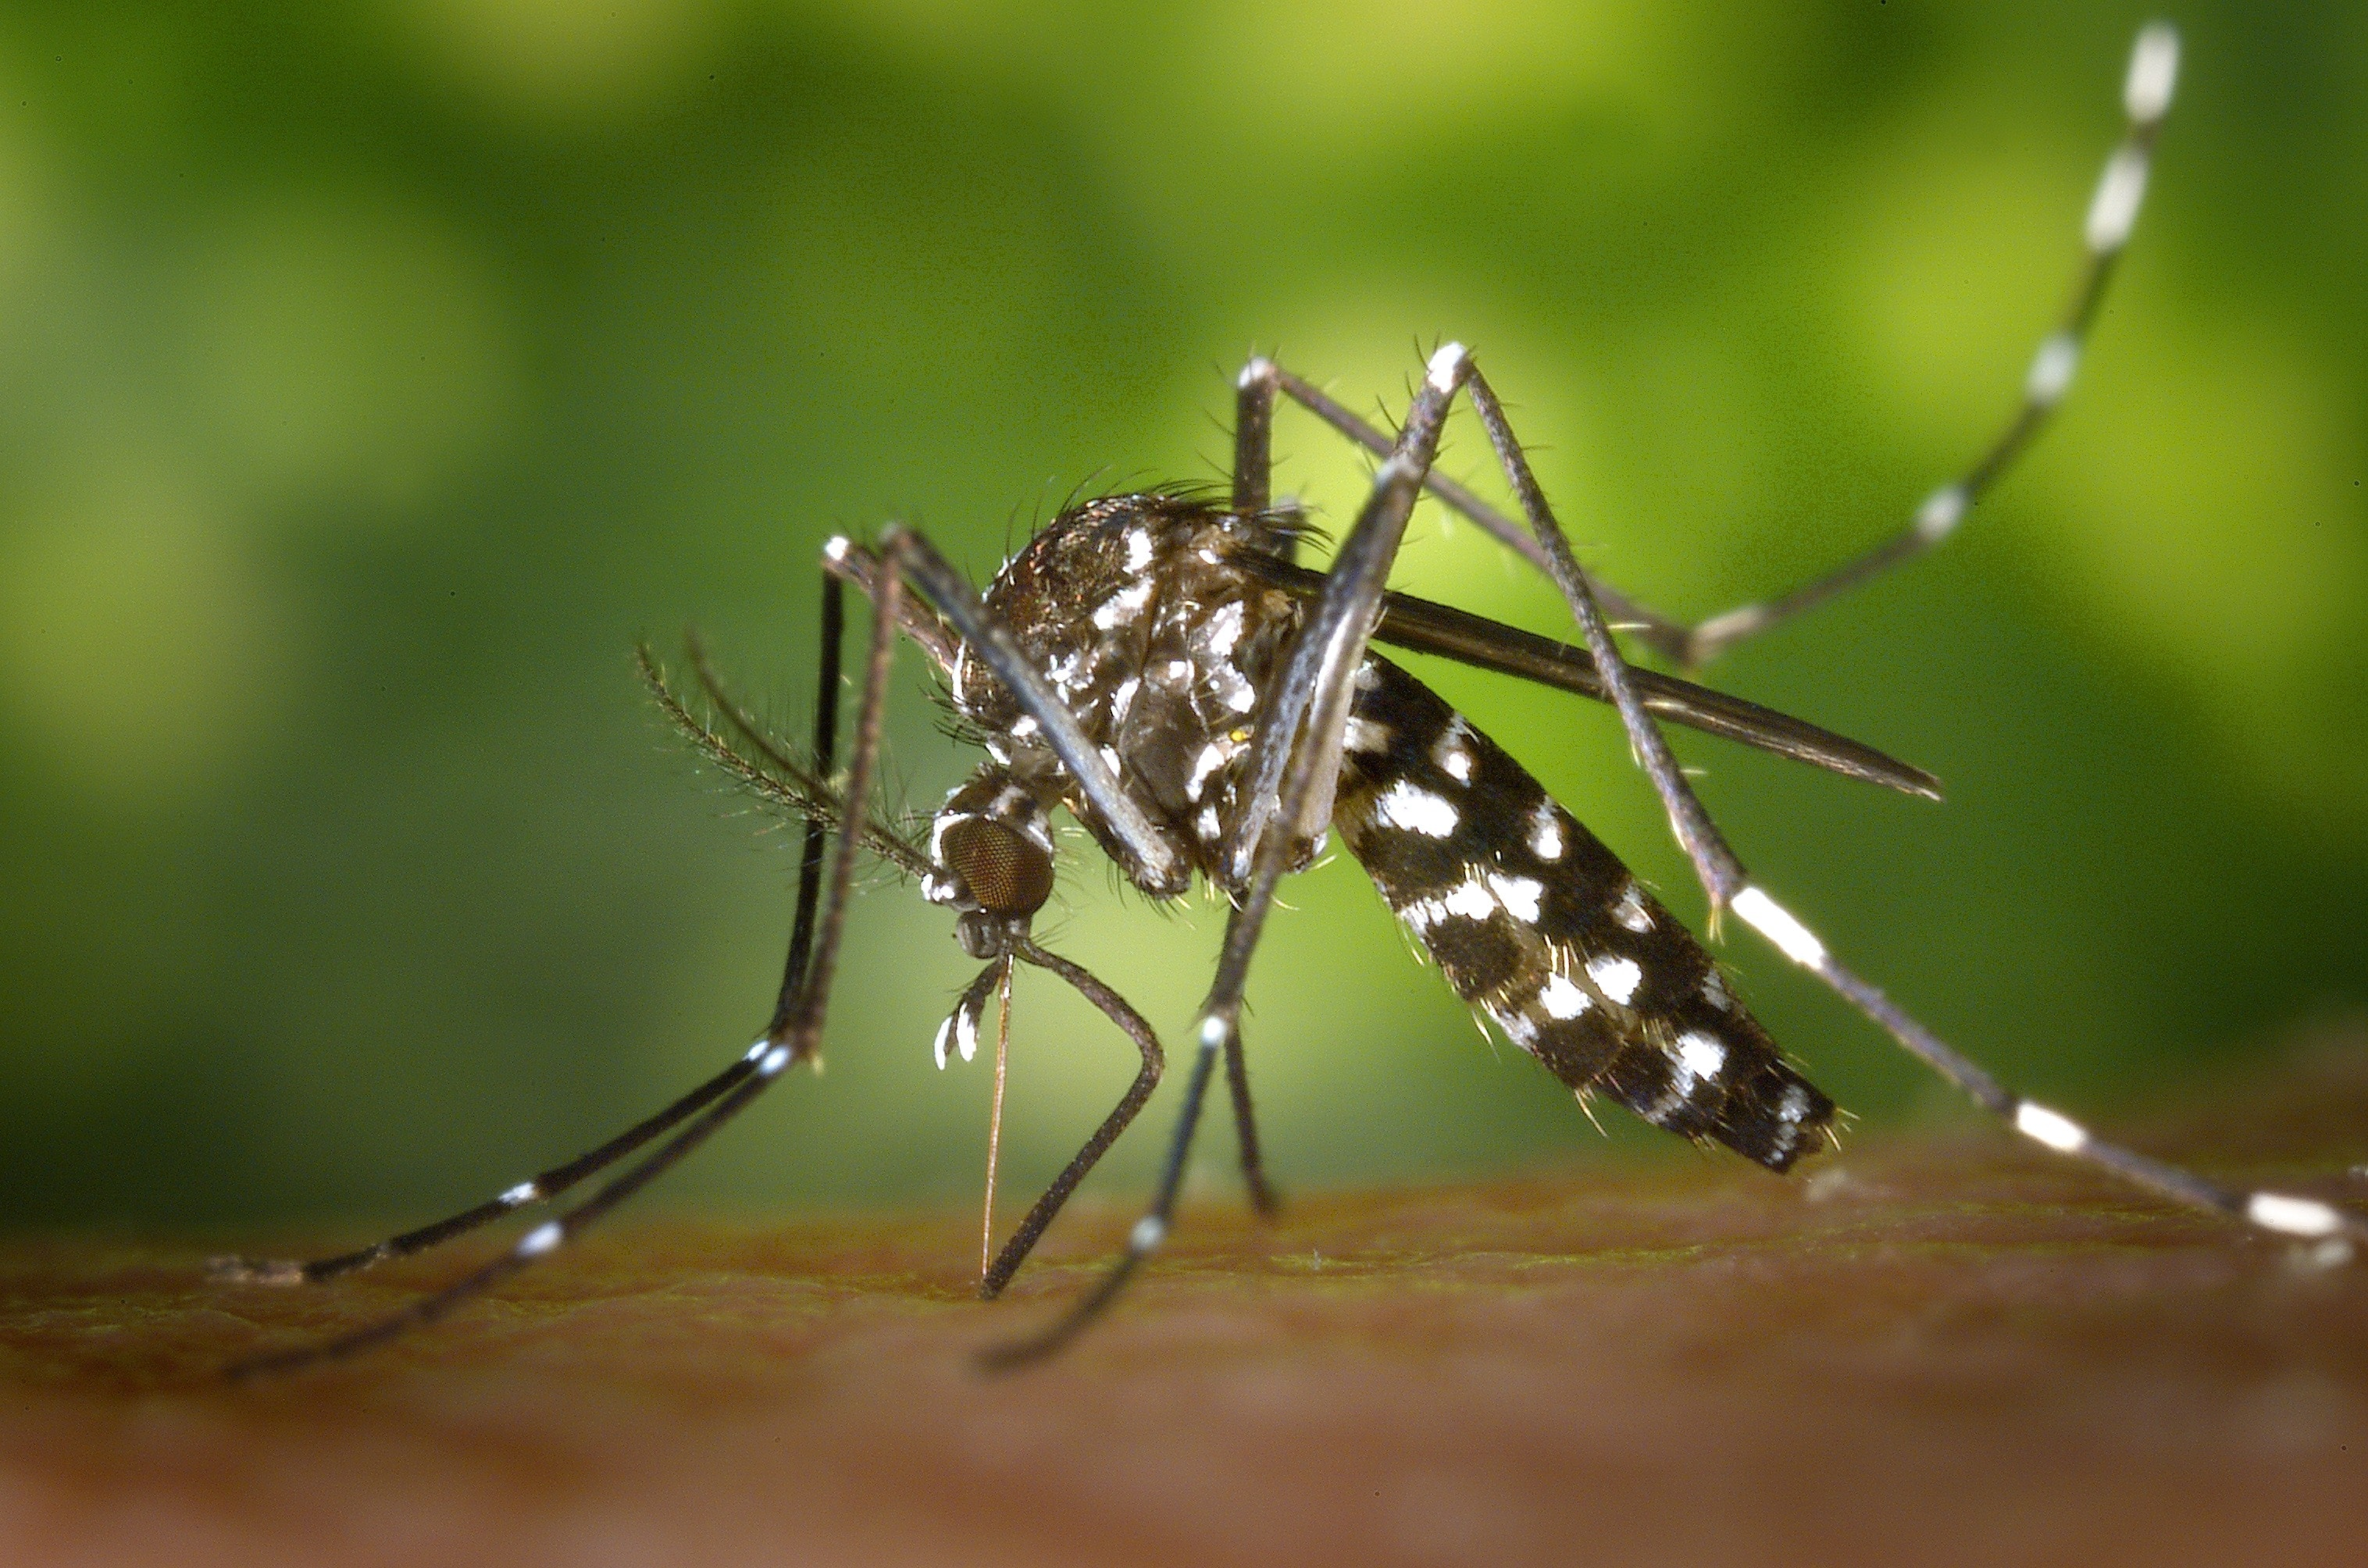 aedes albopictus asian tiger mosquito close up 86722